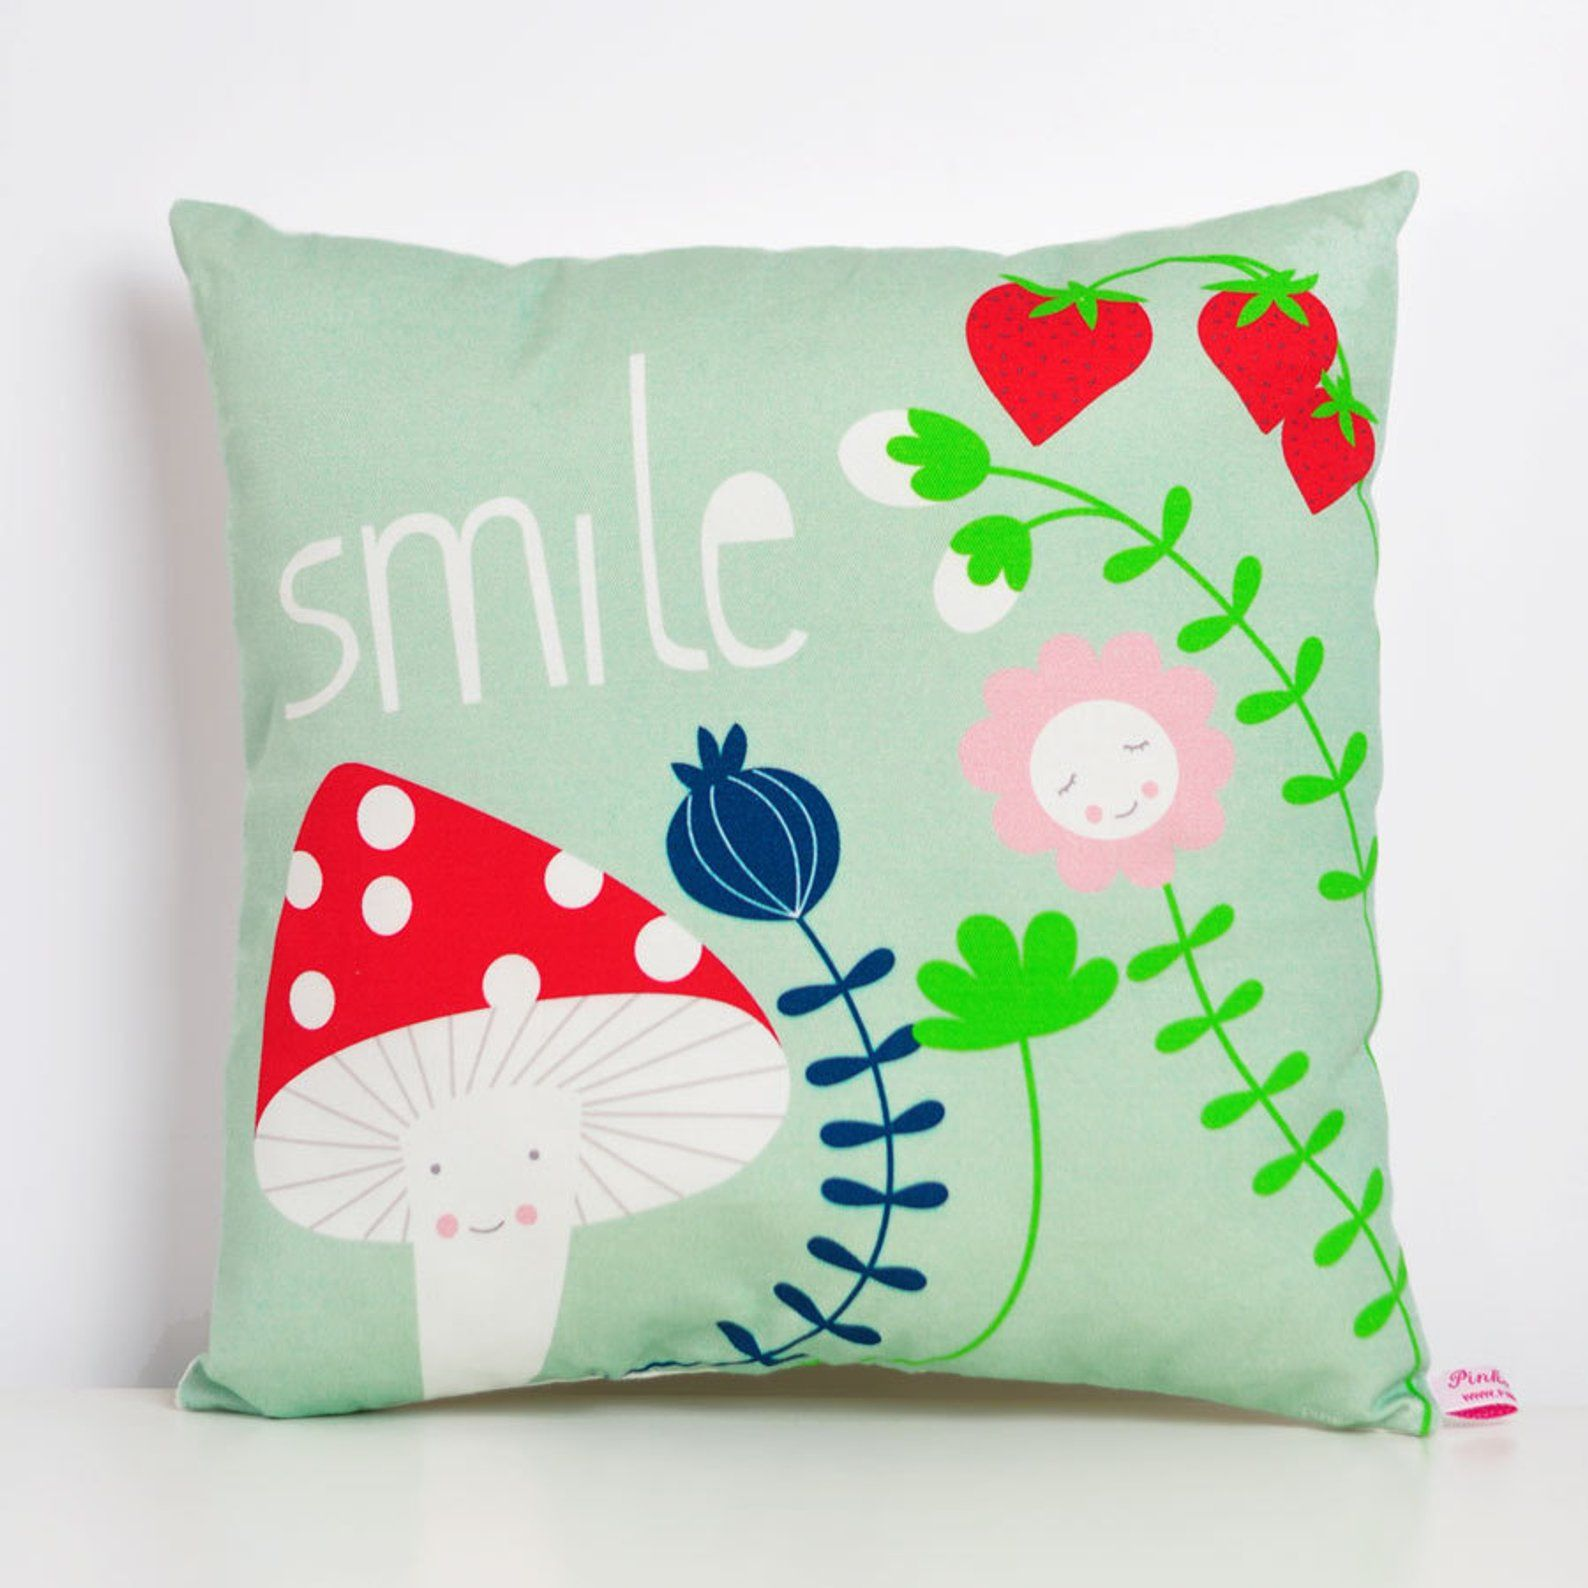 Decorative Throw Pillow For Kids Room Smile With Mushroom And